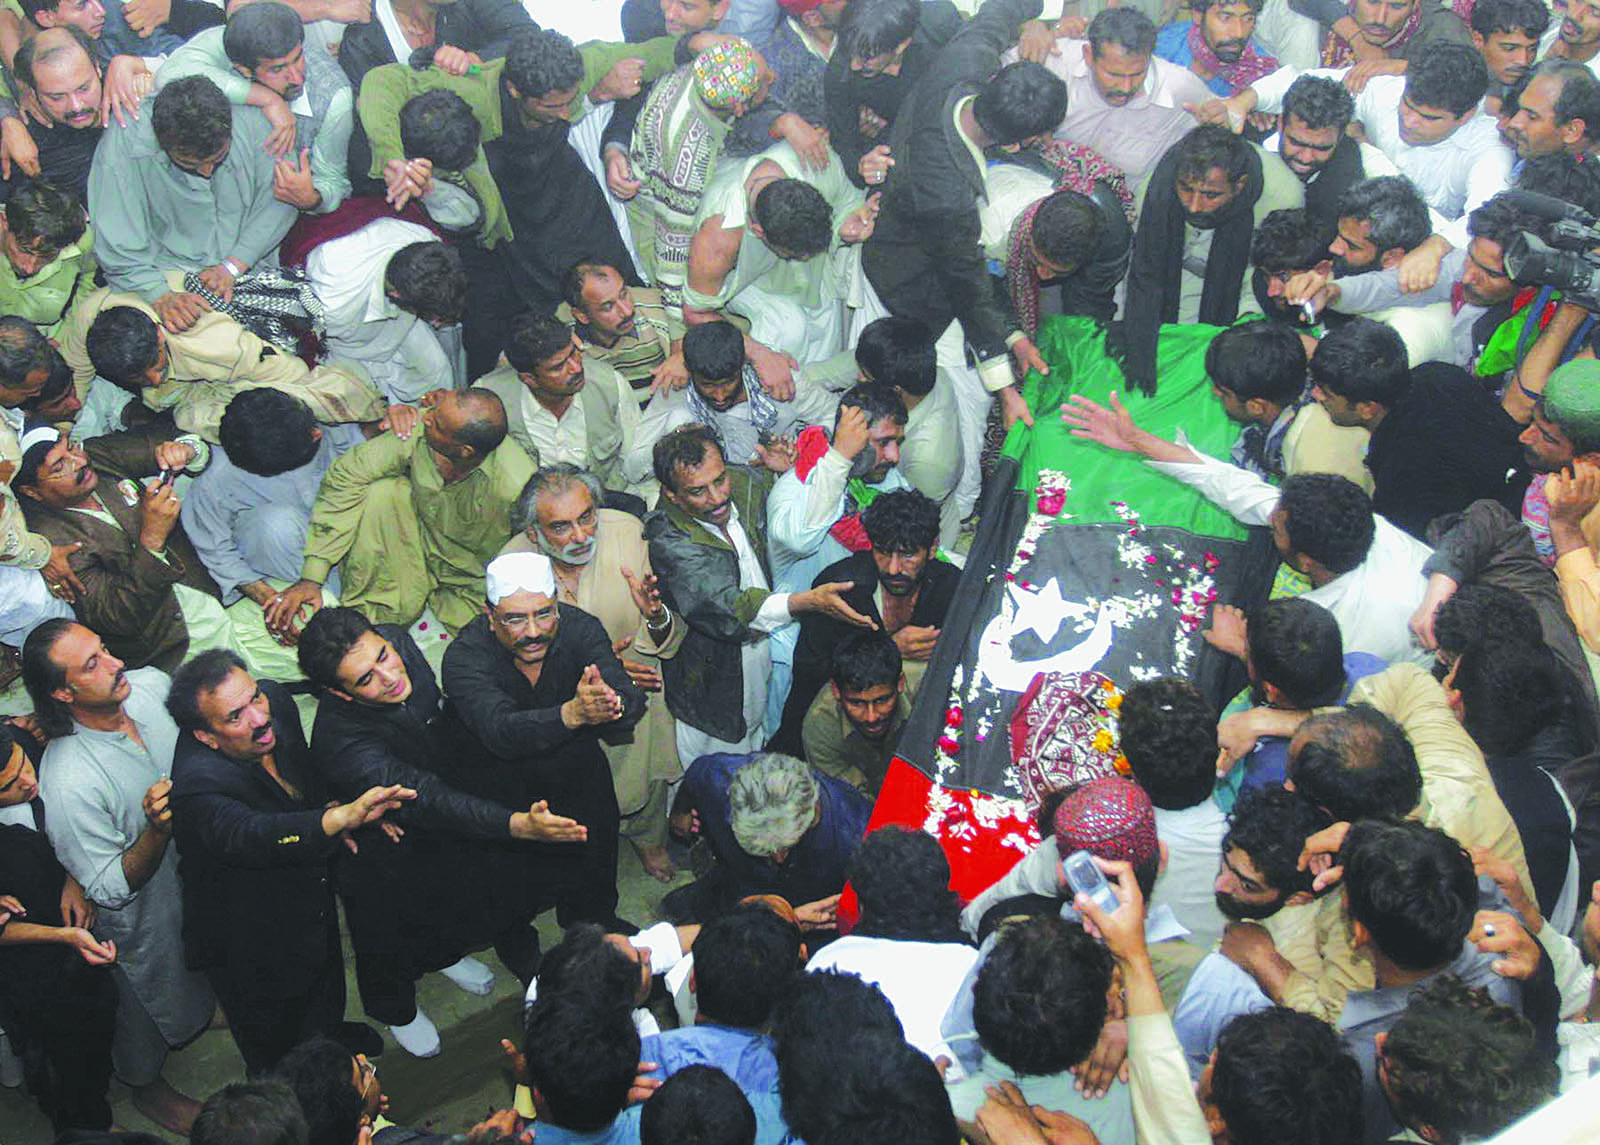 THE burial of Benazir Bhutto at Garhi Khuda Bakhsh was an emotionally draining moment not just for the PPP supporters but for people across the land. It triggered the sympathy wave which produced tangible results in the elections that were held not much later.